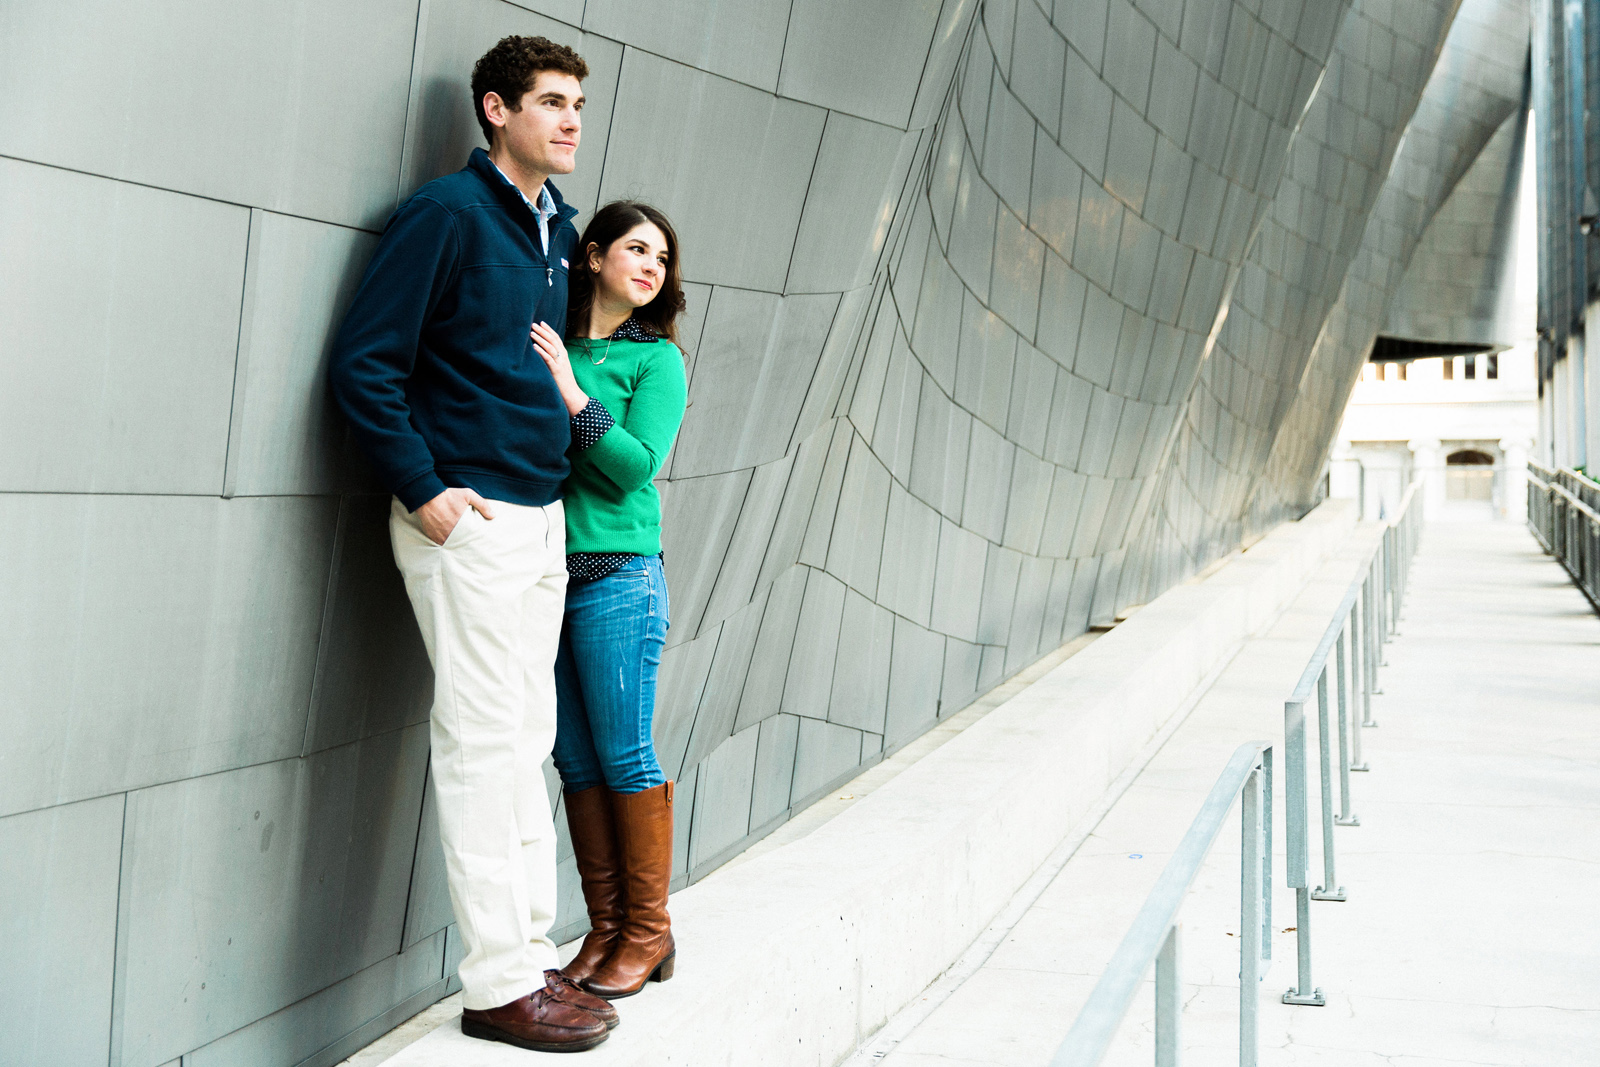 Oldani-Photography-St-Louis-Downtown-Engagement-Session_20141226_155008.jpg